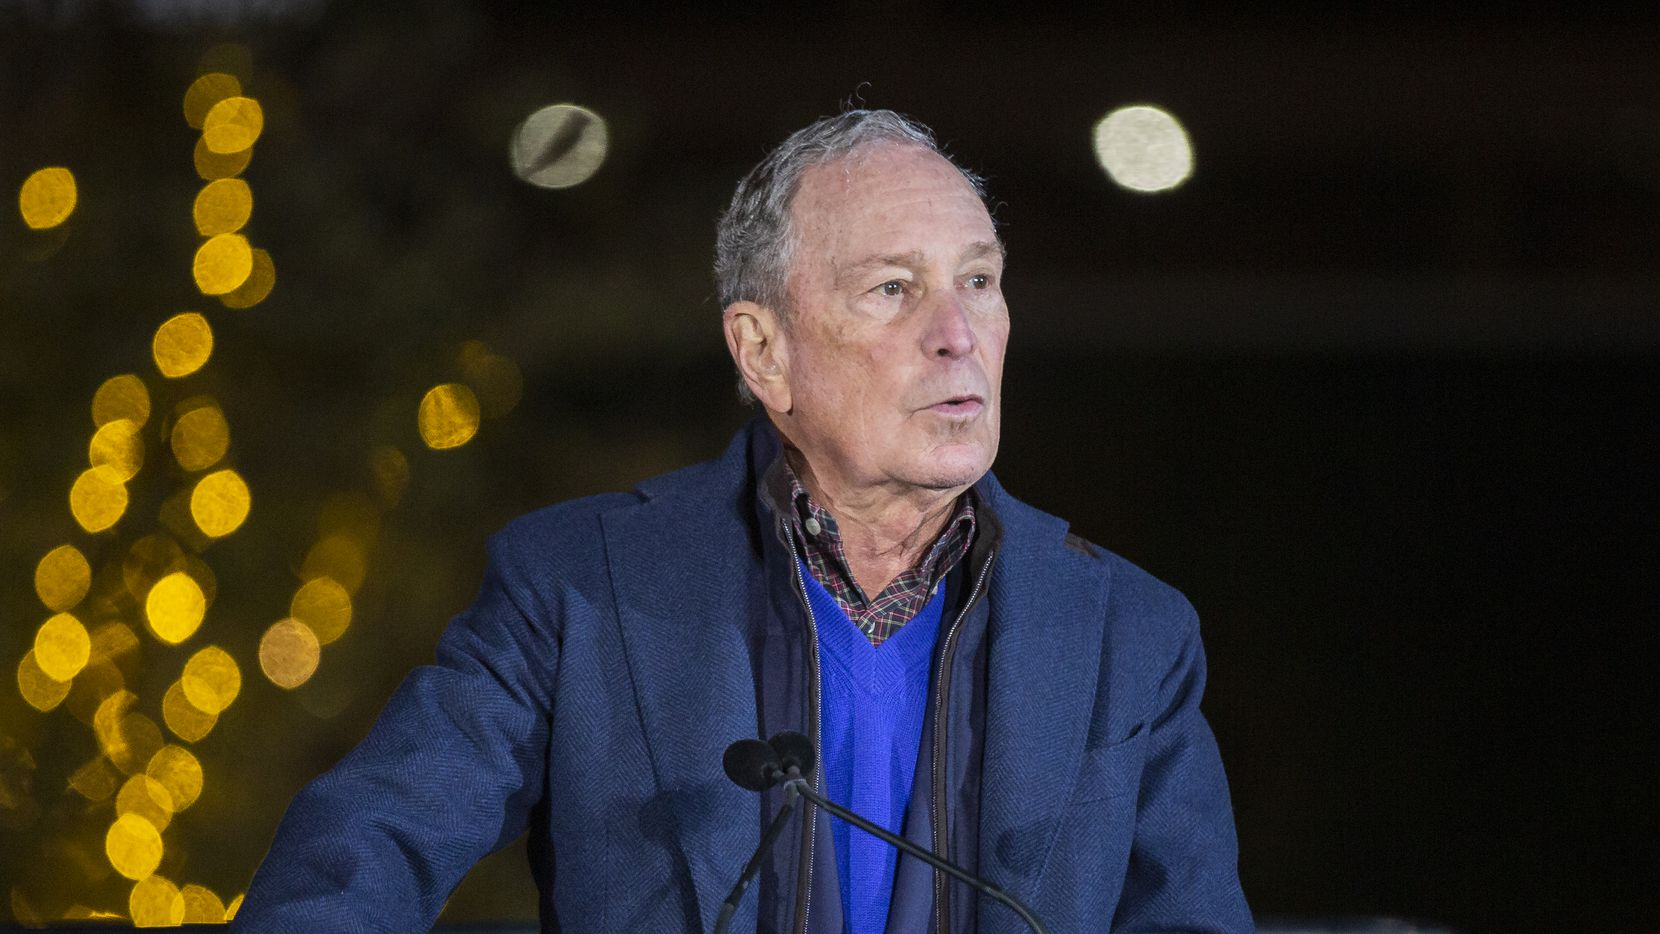 Presidential candidate and former New York Mayor Mike Bloomberg campaigns at the Happiest Hour on Jan. 11, 2020 in Dallas. (Juan Figueroa/ The Dallas Morning News)